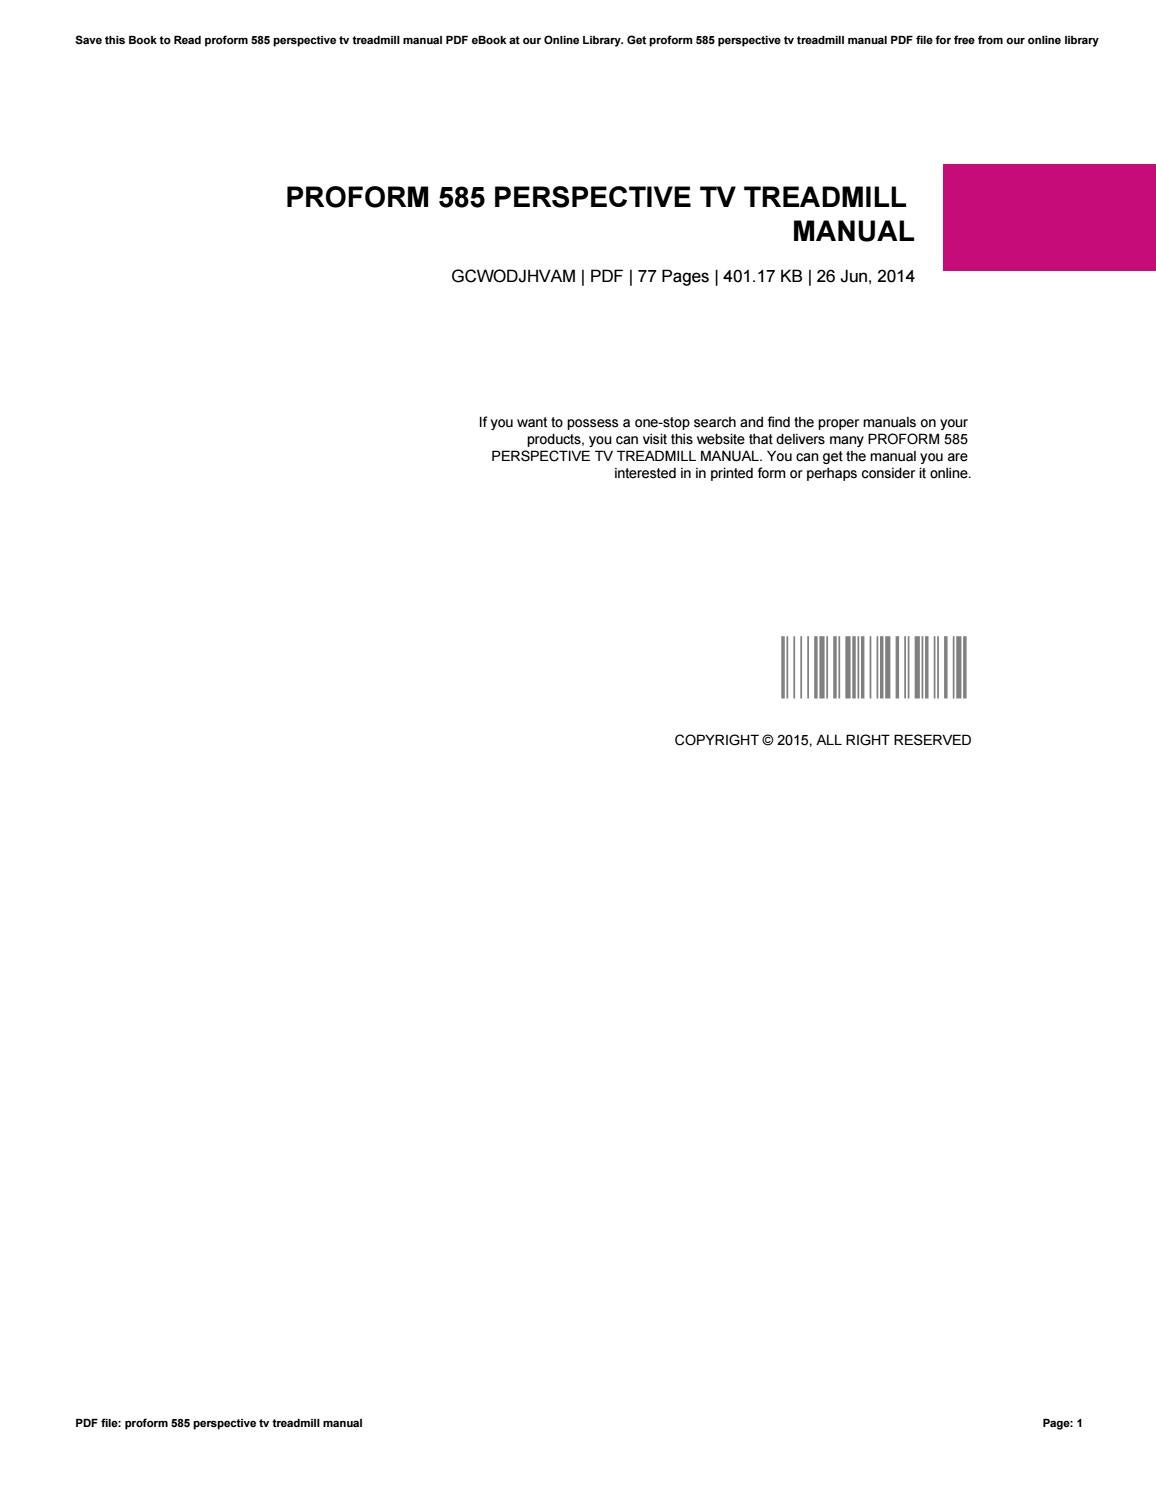 Proform 585 Perspective Tv Treadmill Manual By Mailed66 Issuu Wiring Diagram